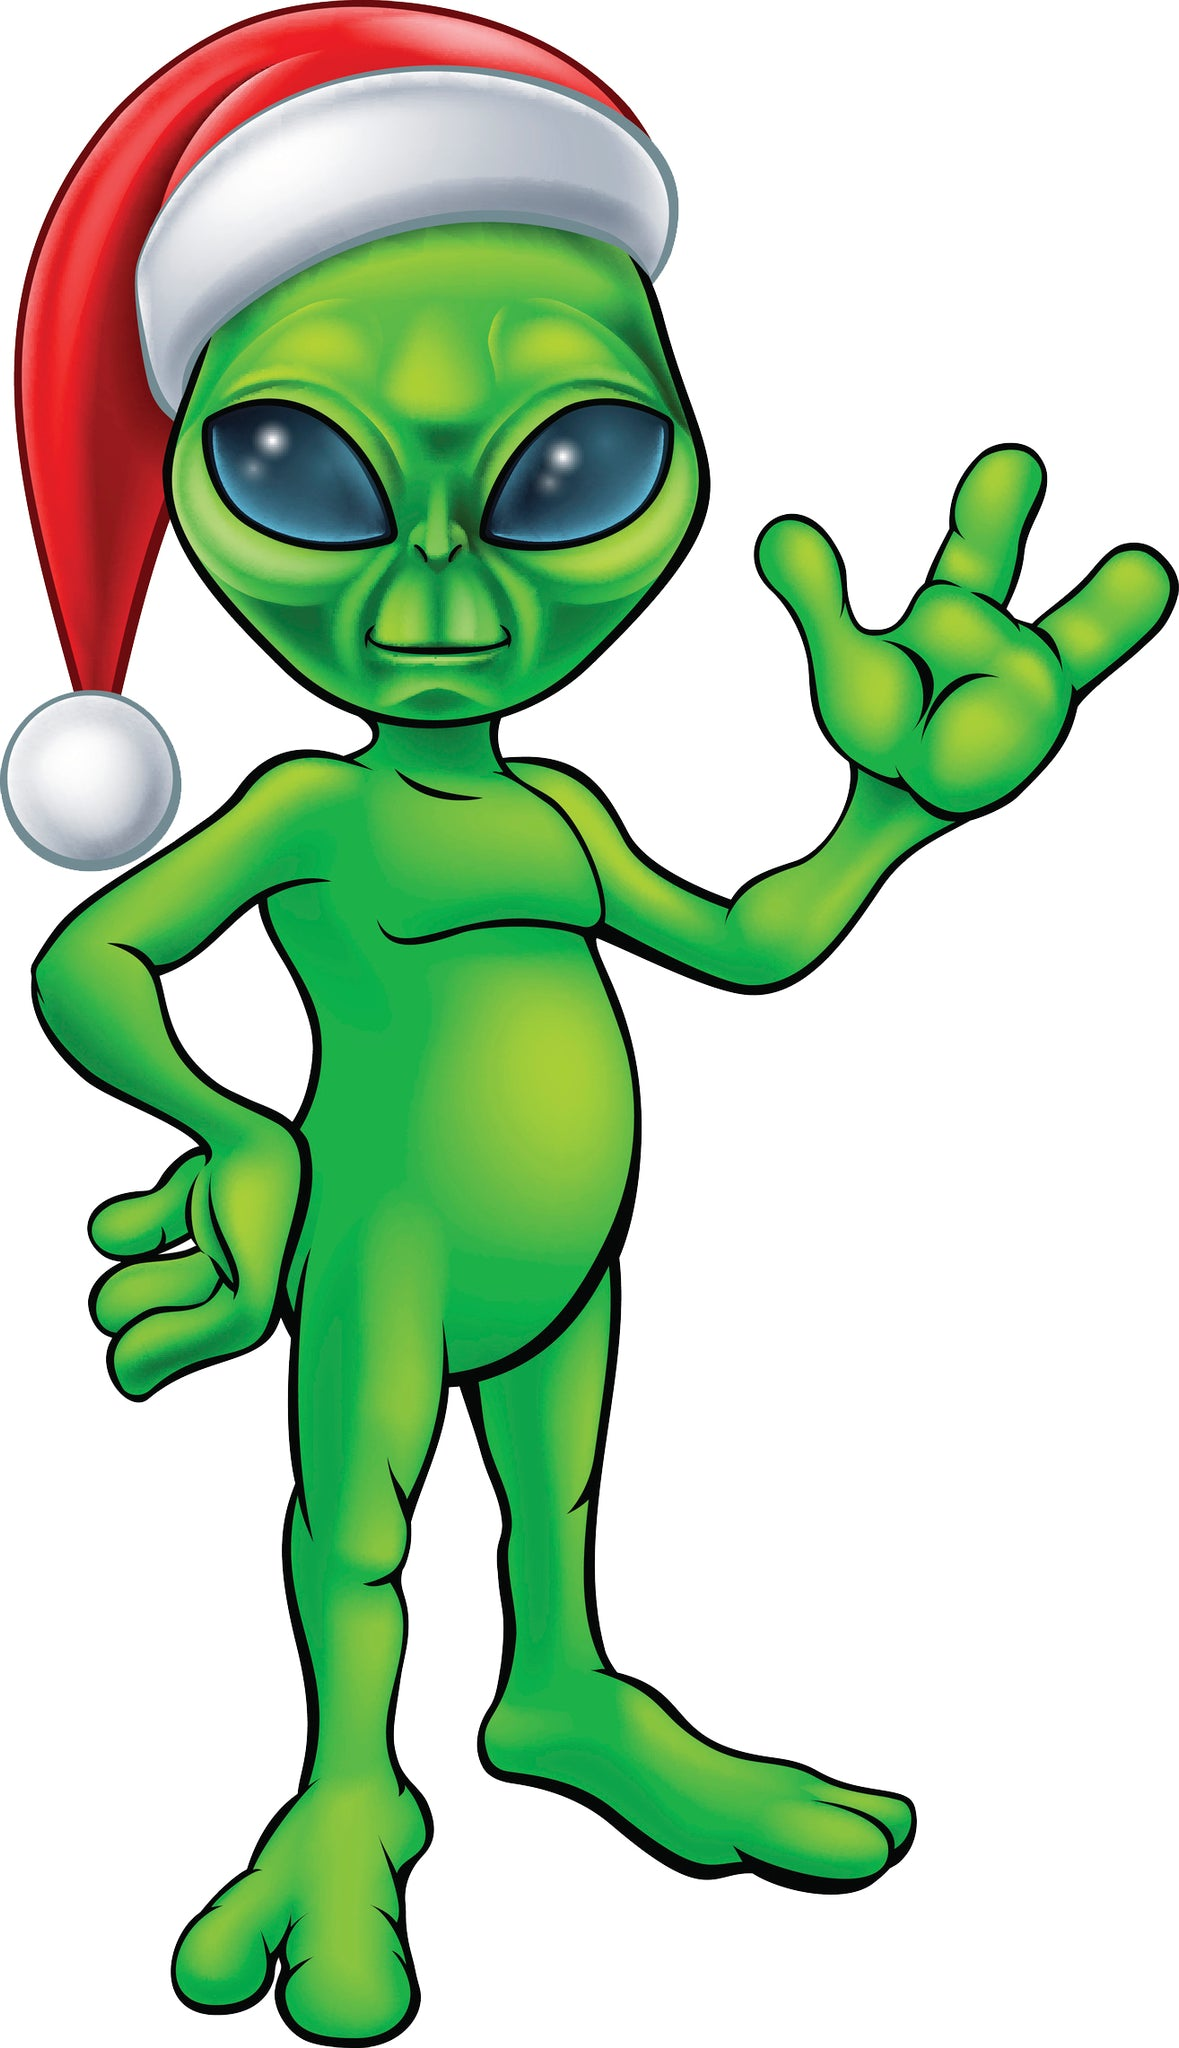 Creepy Green Alien with Santa Hat Cartoon Vinyl Decal Sticker